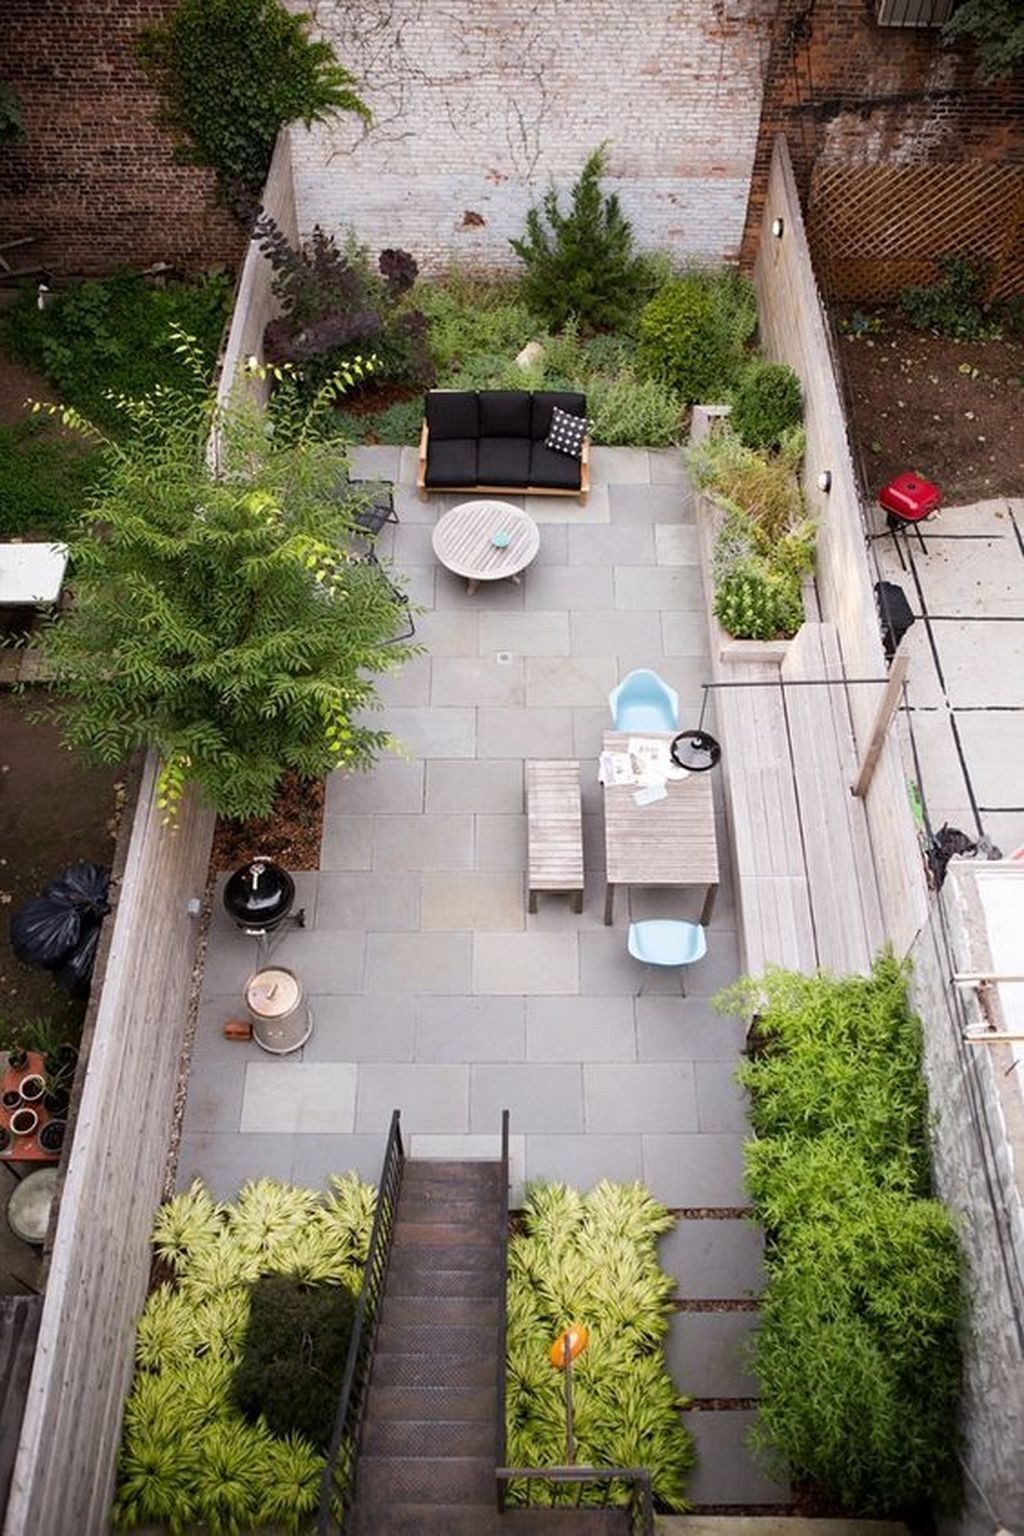 12 Awesome Ways How To Improve Townhouse Backyard Landscaping Ideas within 10 Genius Initiatives of How to Makeover Landscaping Small Backyards Townhouse